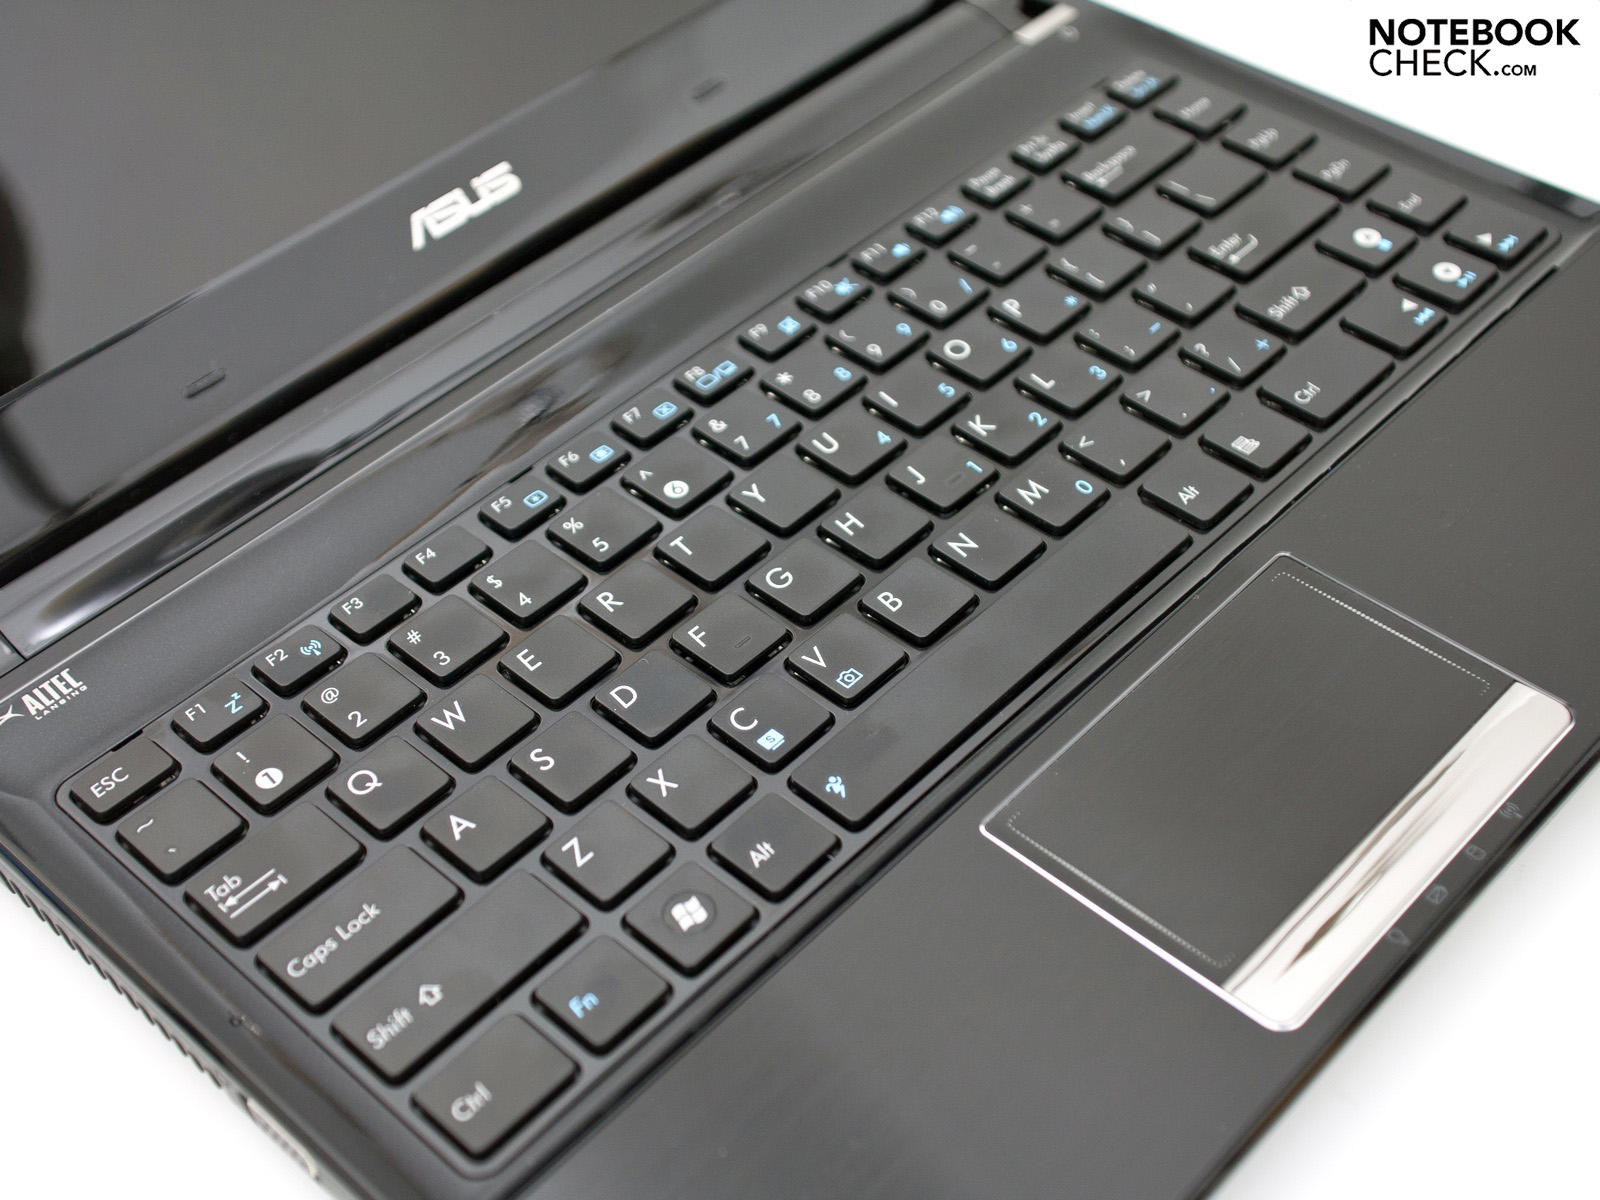 ASUS U30SD VIA AUDIO WINDOWS 7 DRIVERS DOWNLOAD (2019)